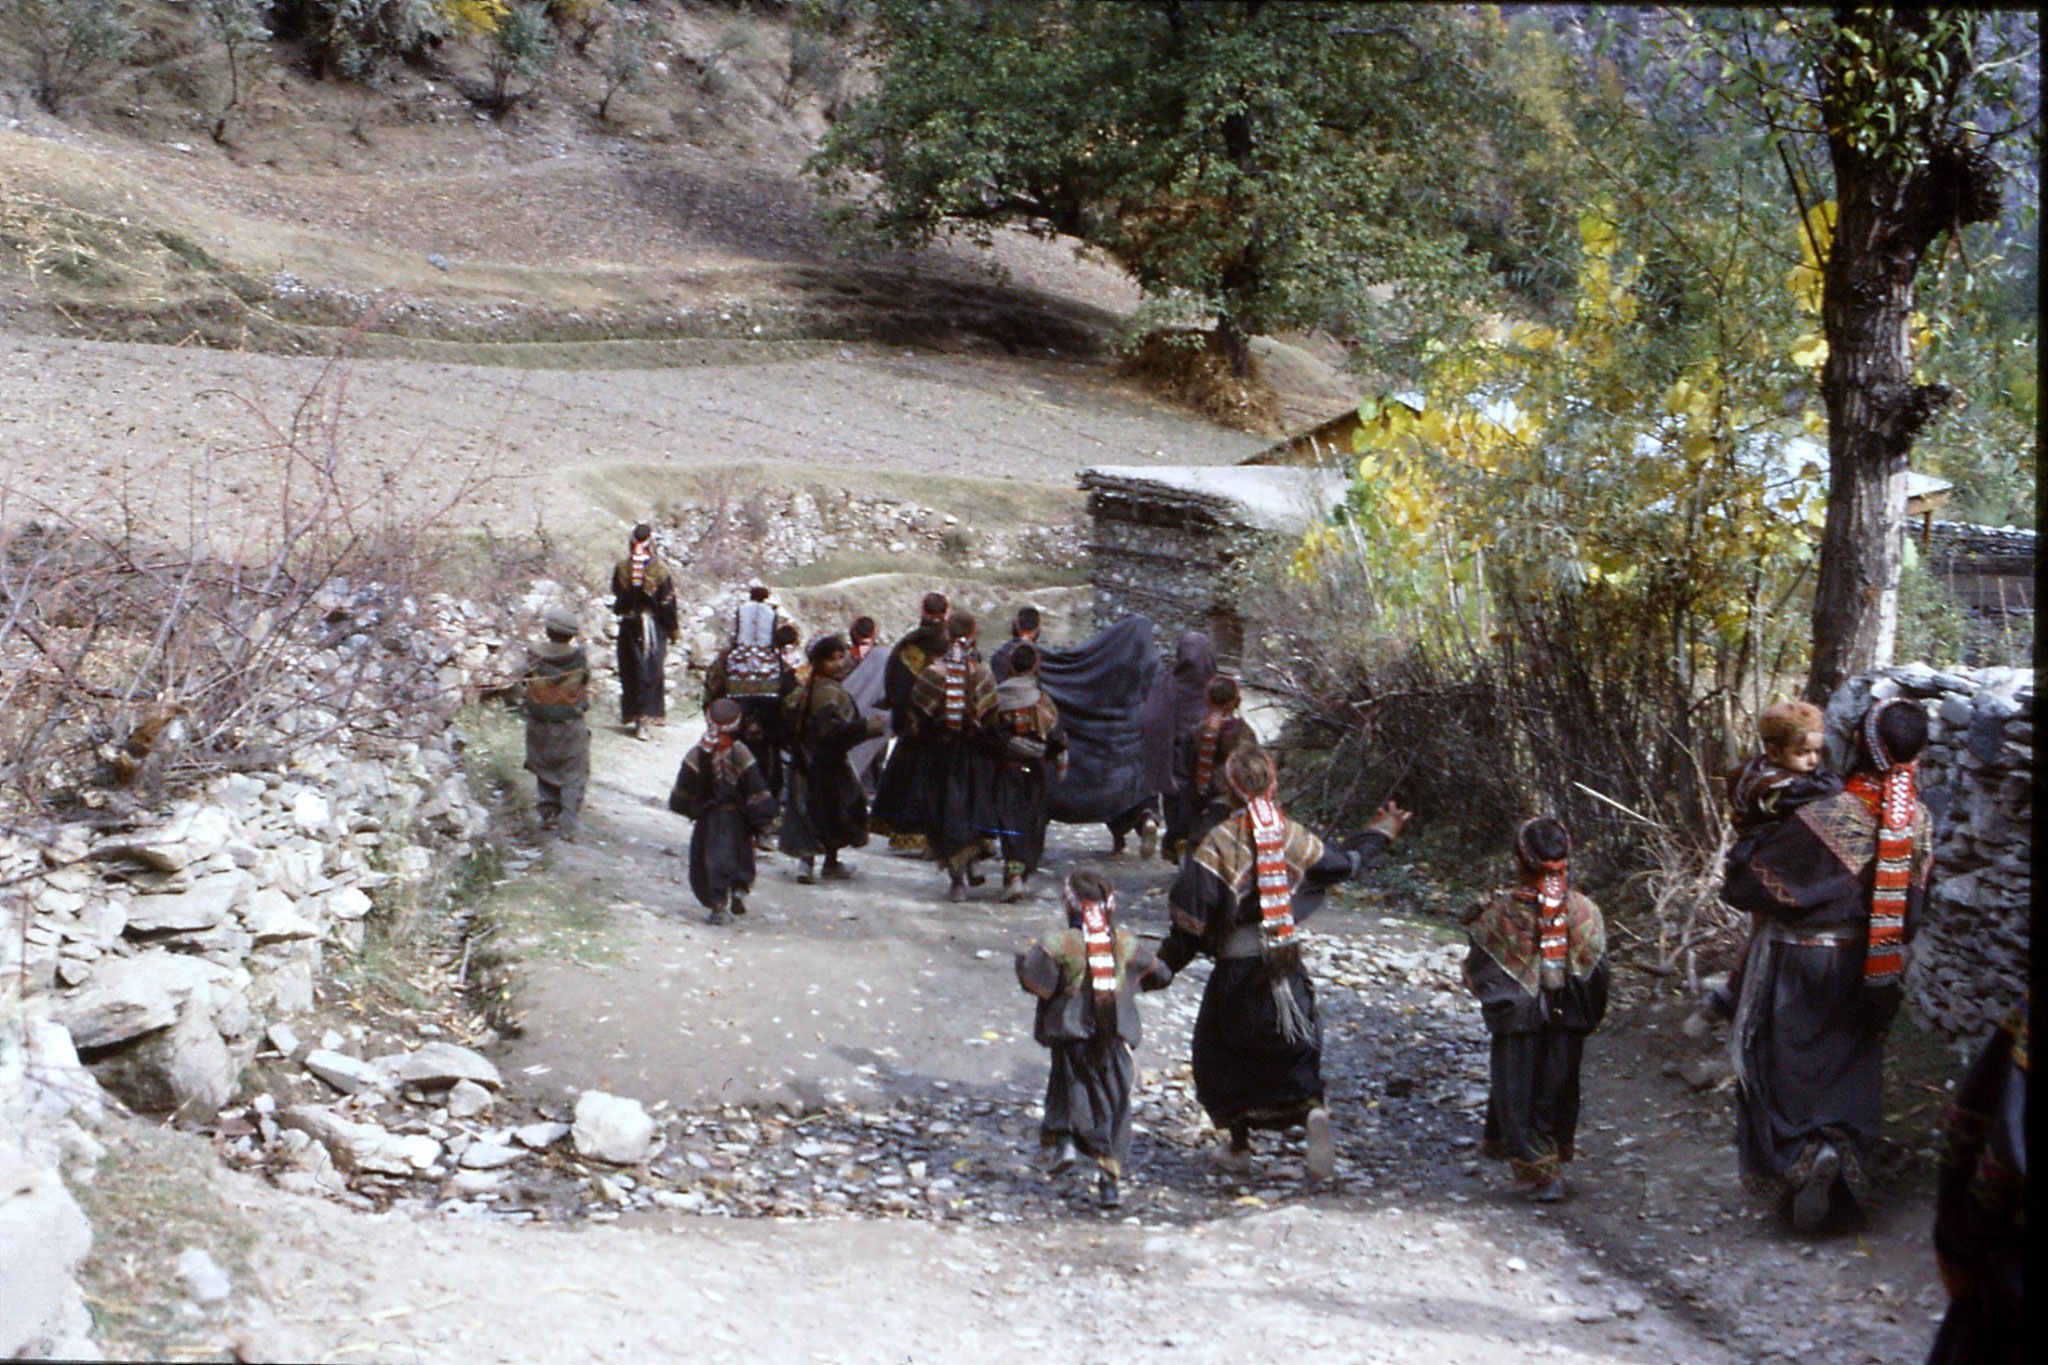 1/11/1989: 3: Kalash Valley, Bumburet, after bridal procession